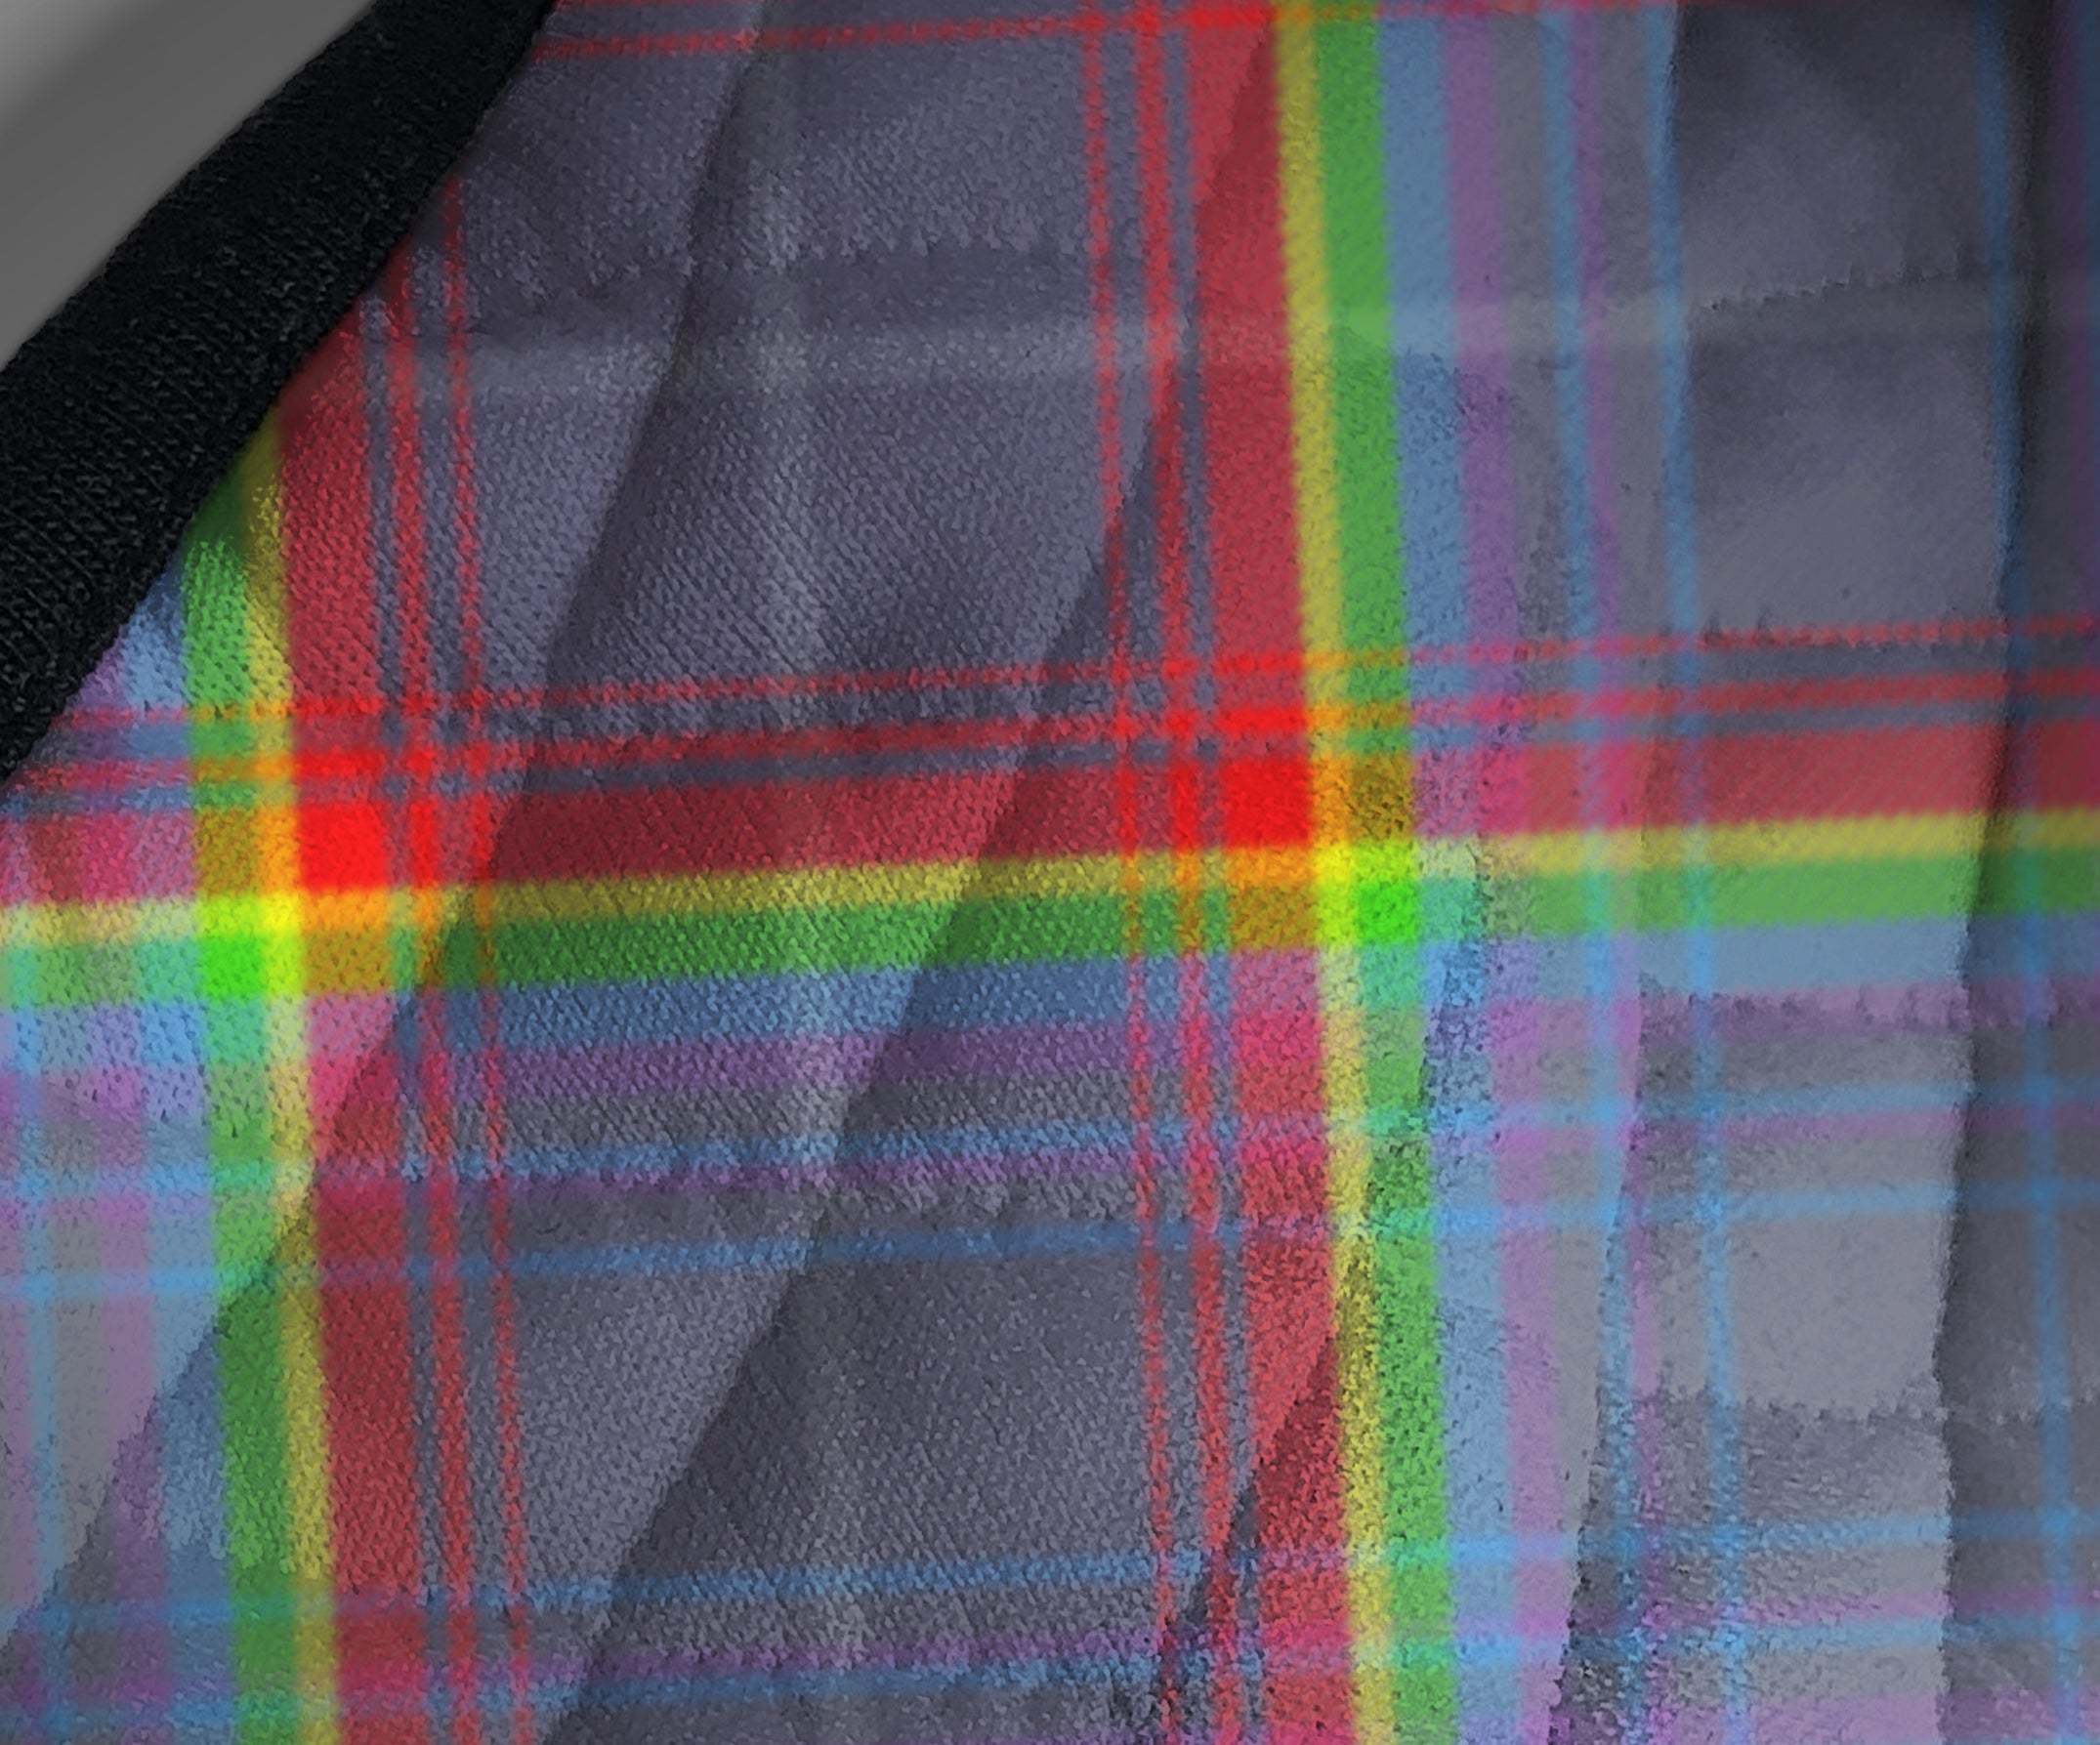 Scotland's Grace the Hope Rainbow - NHS - Contoured Tartan custom printed face mask - by Steven Patrick Sim the Tartan Artisan - Stevie Tartan Guy Arbroath